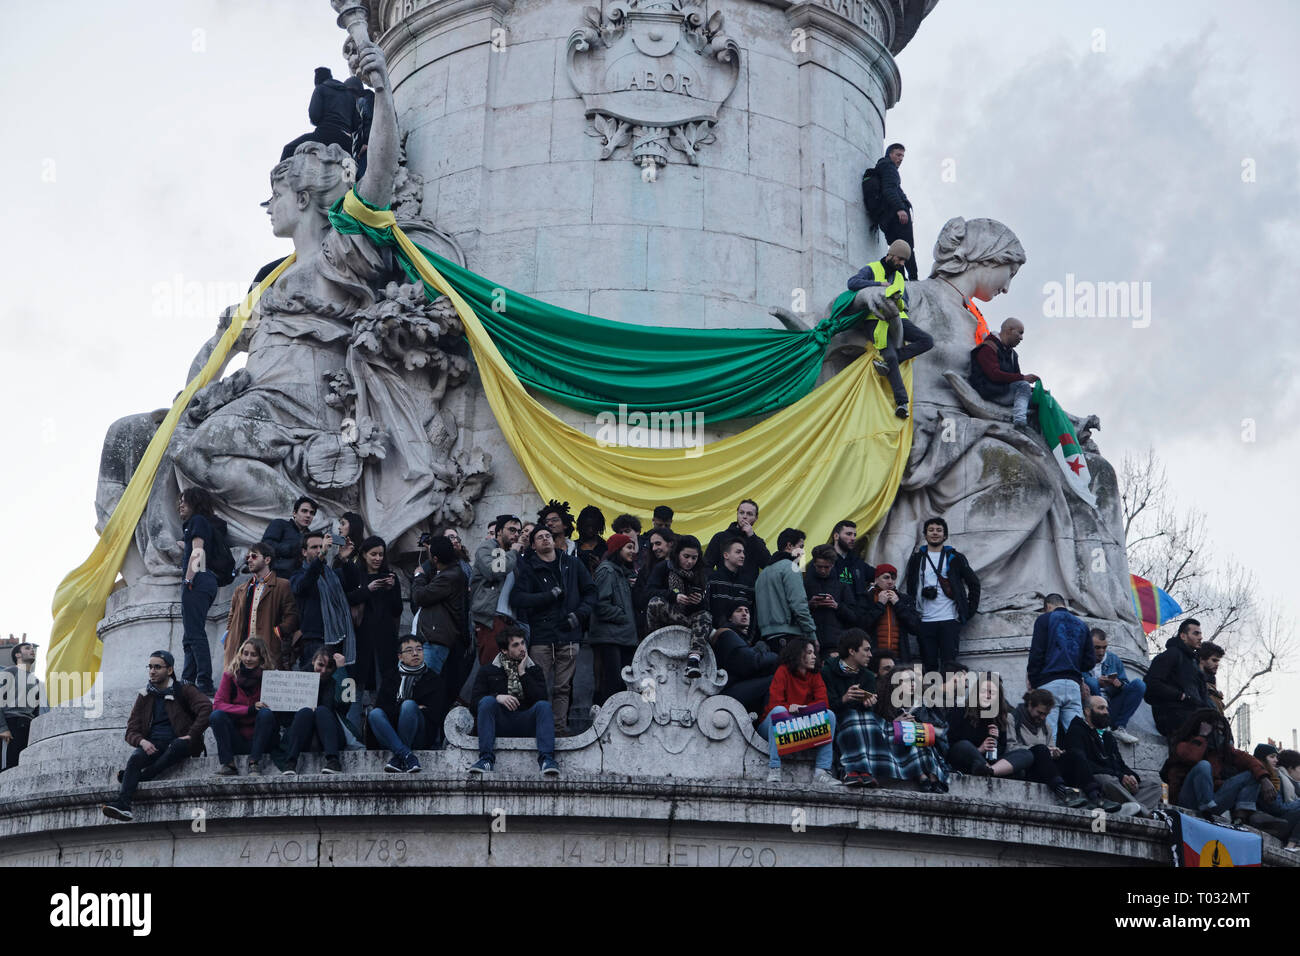 Paris, France. 16th Mar, 2019. Demonstration for climate, biodiversity, social justice and against repression, on March 16, 2019 in Paris, France. Credit: Bernard Menigault/Alamy Live News - Stock Image